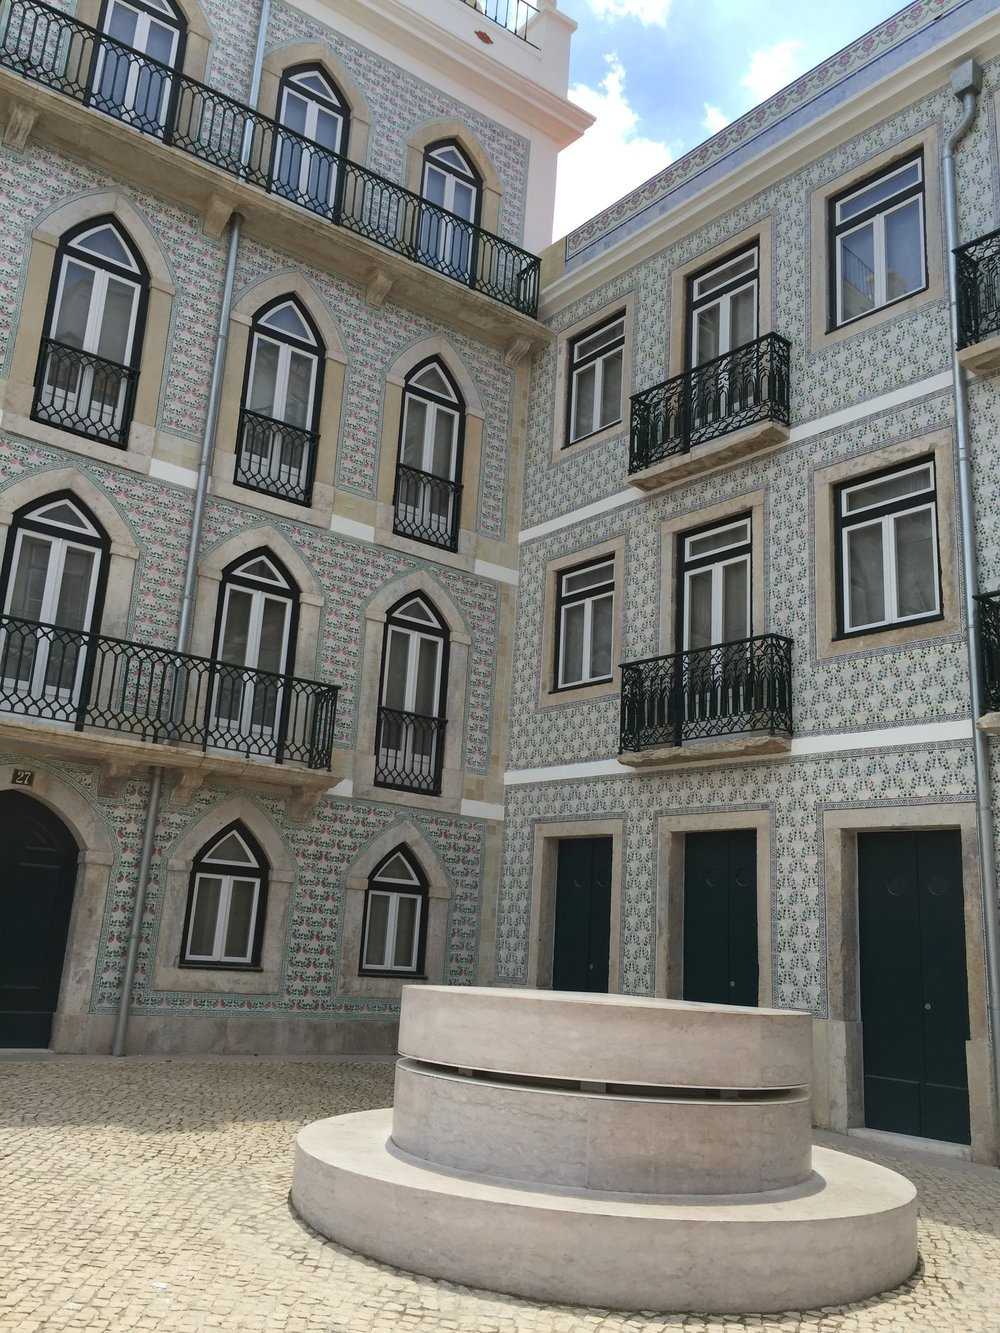 Tiled building in Alfama